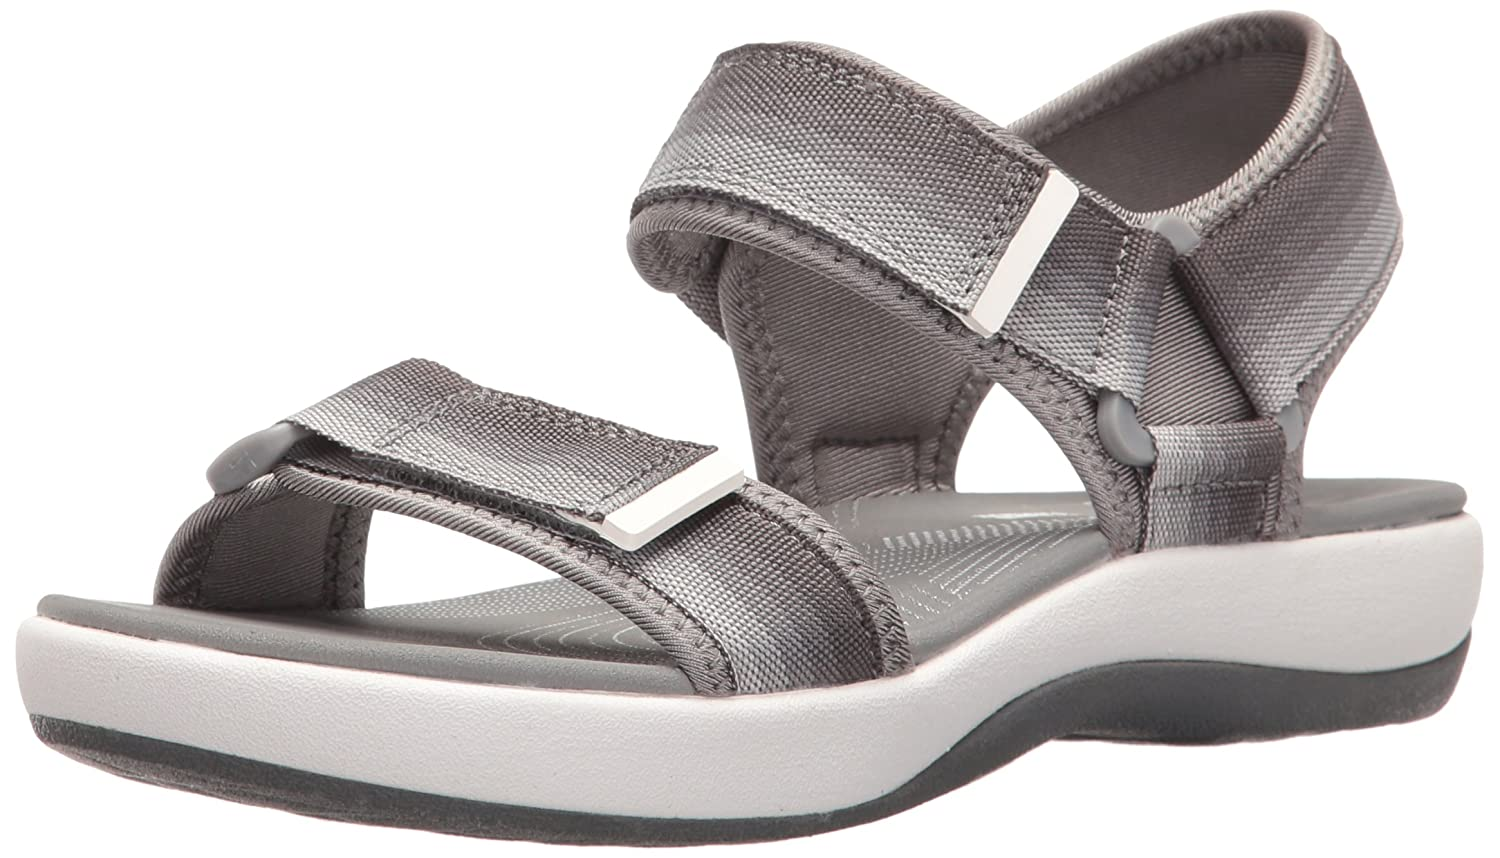 70e56c95970c Clarks Women s Brizo Ravena Flat Sandal  Amazon.co.uk  Shoes   Bags